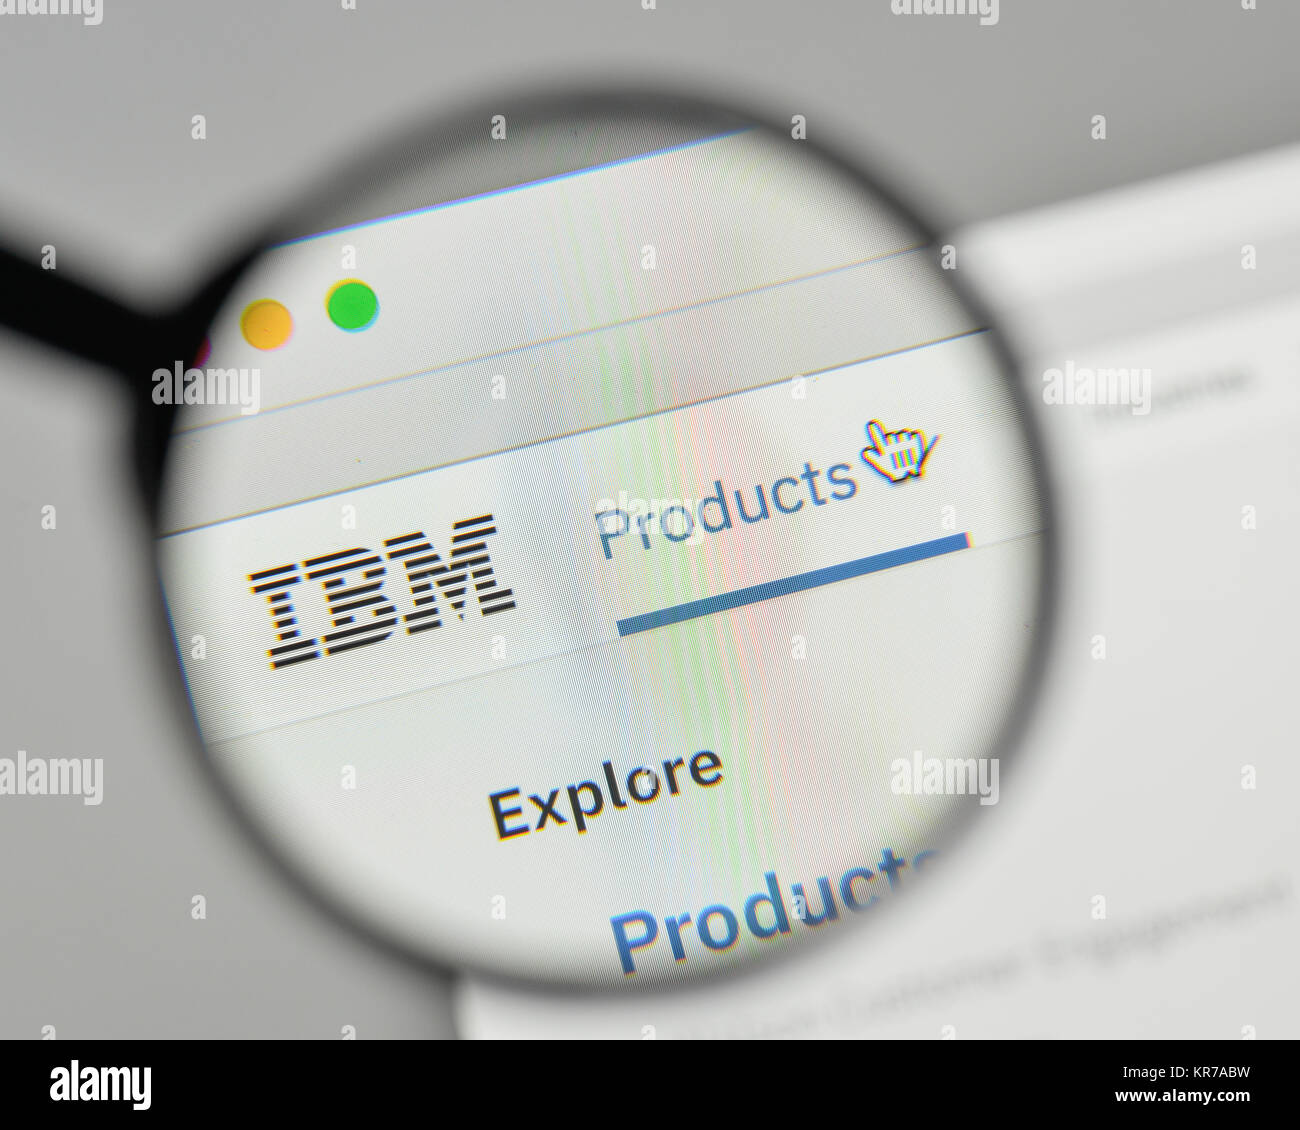 Milan, Italy - November 1, 2017: IBM logo on the website homepage. - Stock Image